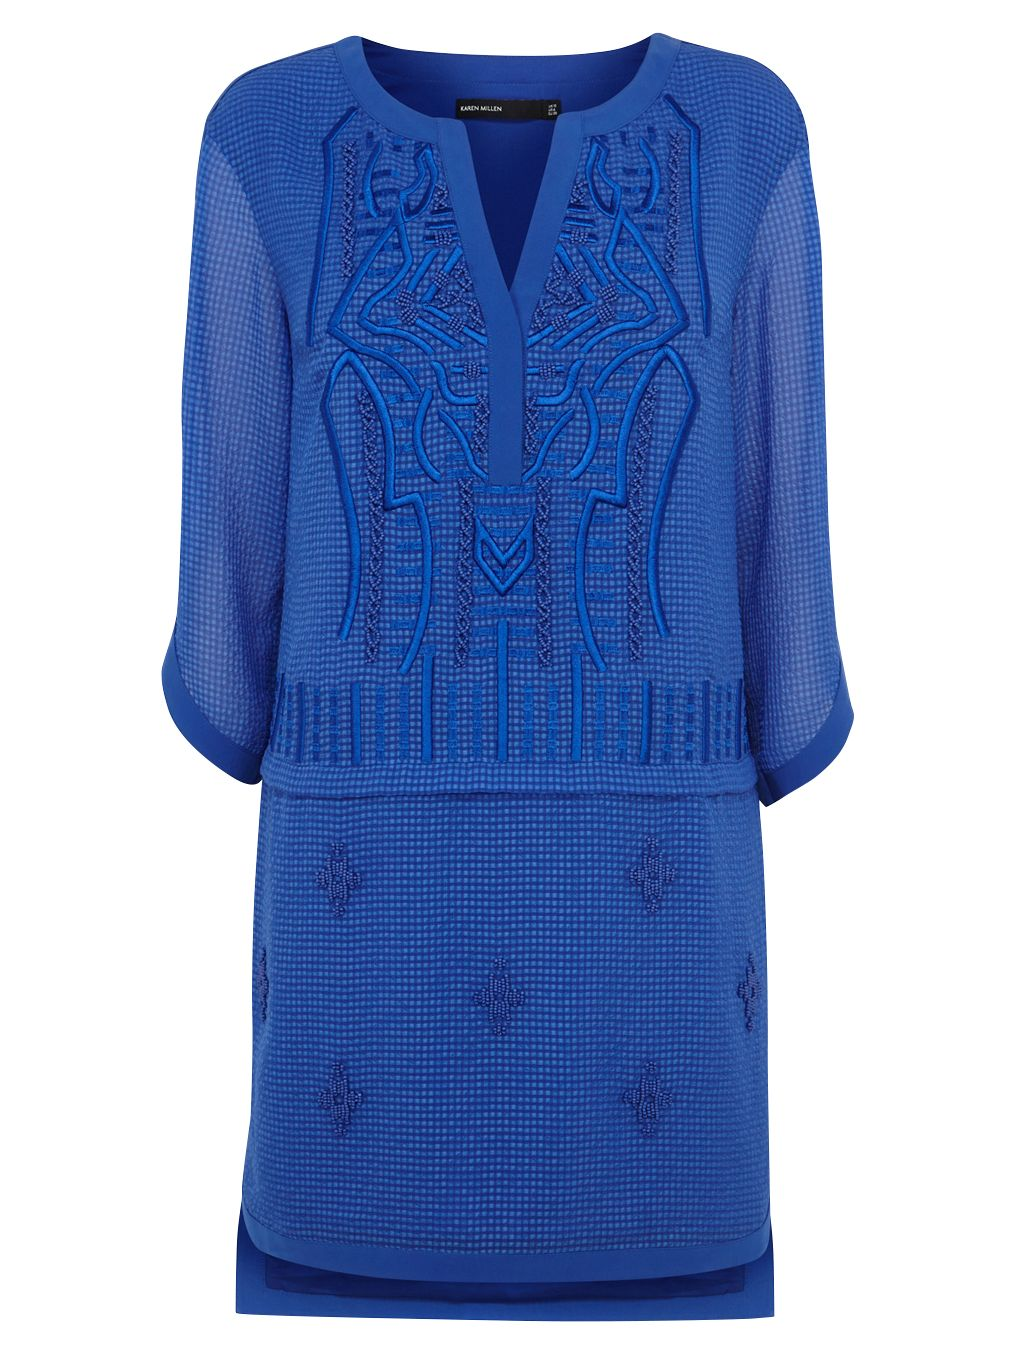 karen millen graphic embroidery dress blue, karen, millen, graphic, embroidery, dress, blue, karen millen, 6|14|12|10|8, women, womens dresses, gifts, wedding, wedding clothing, female guests, special offers, womenswear offers, womens dresses offers, 1893577